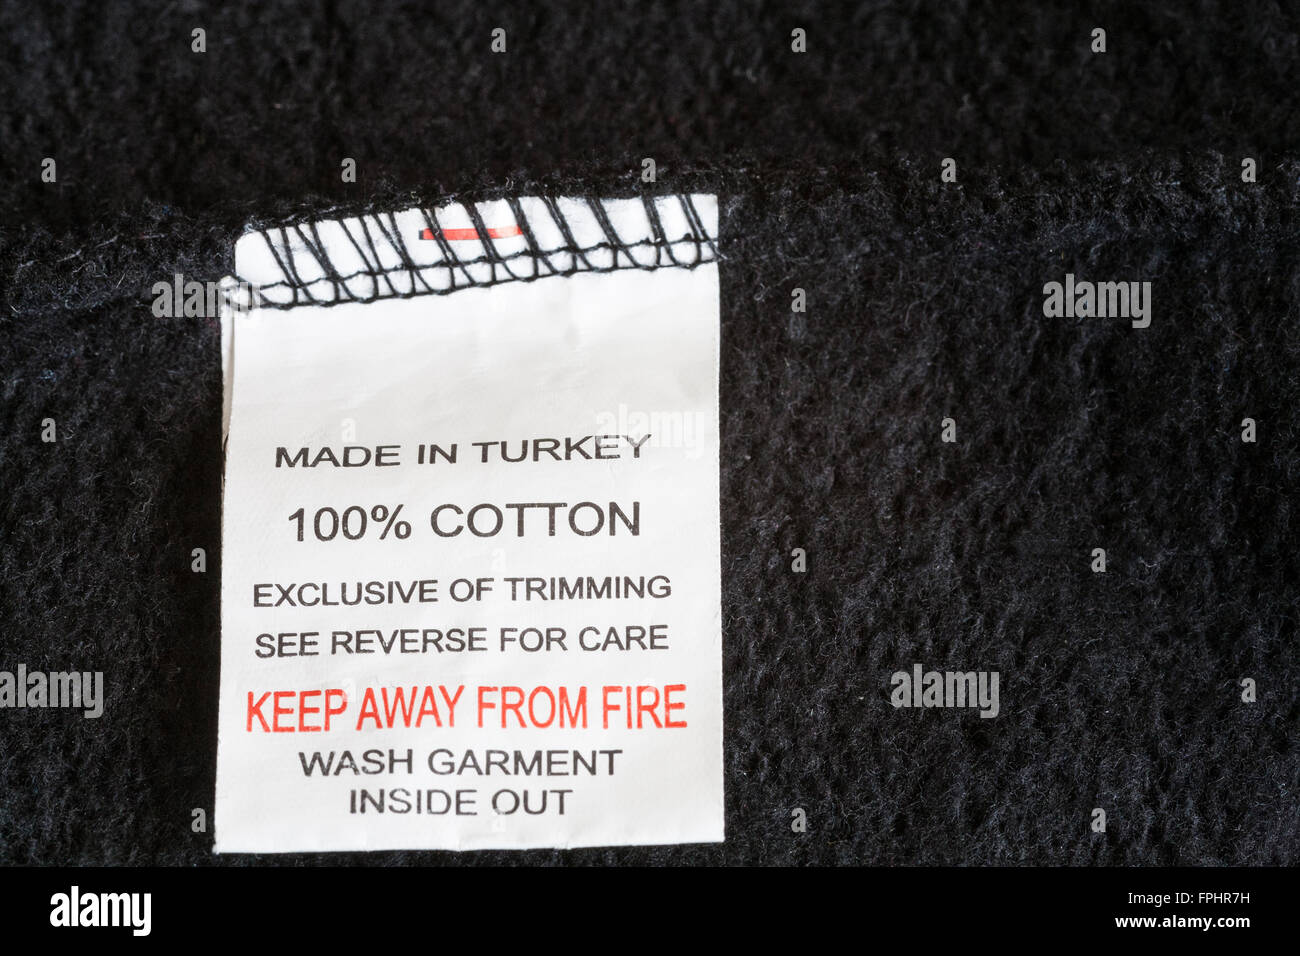 Close up label in black 100 % cotton fleece inflammable garment made in Turkey low cost manufactured product made - Stock Image